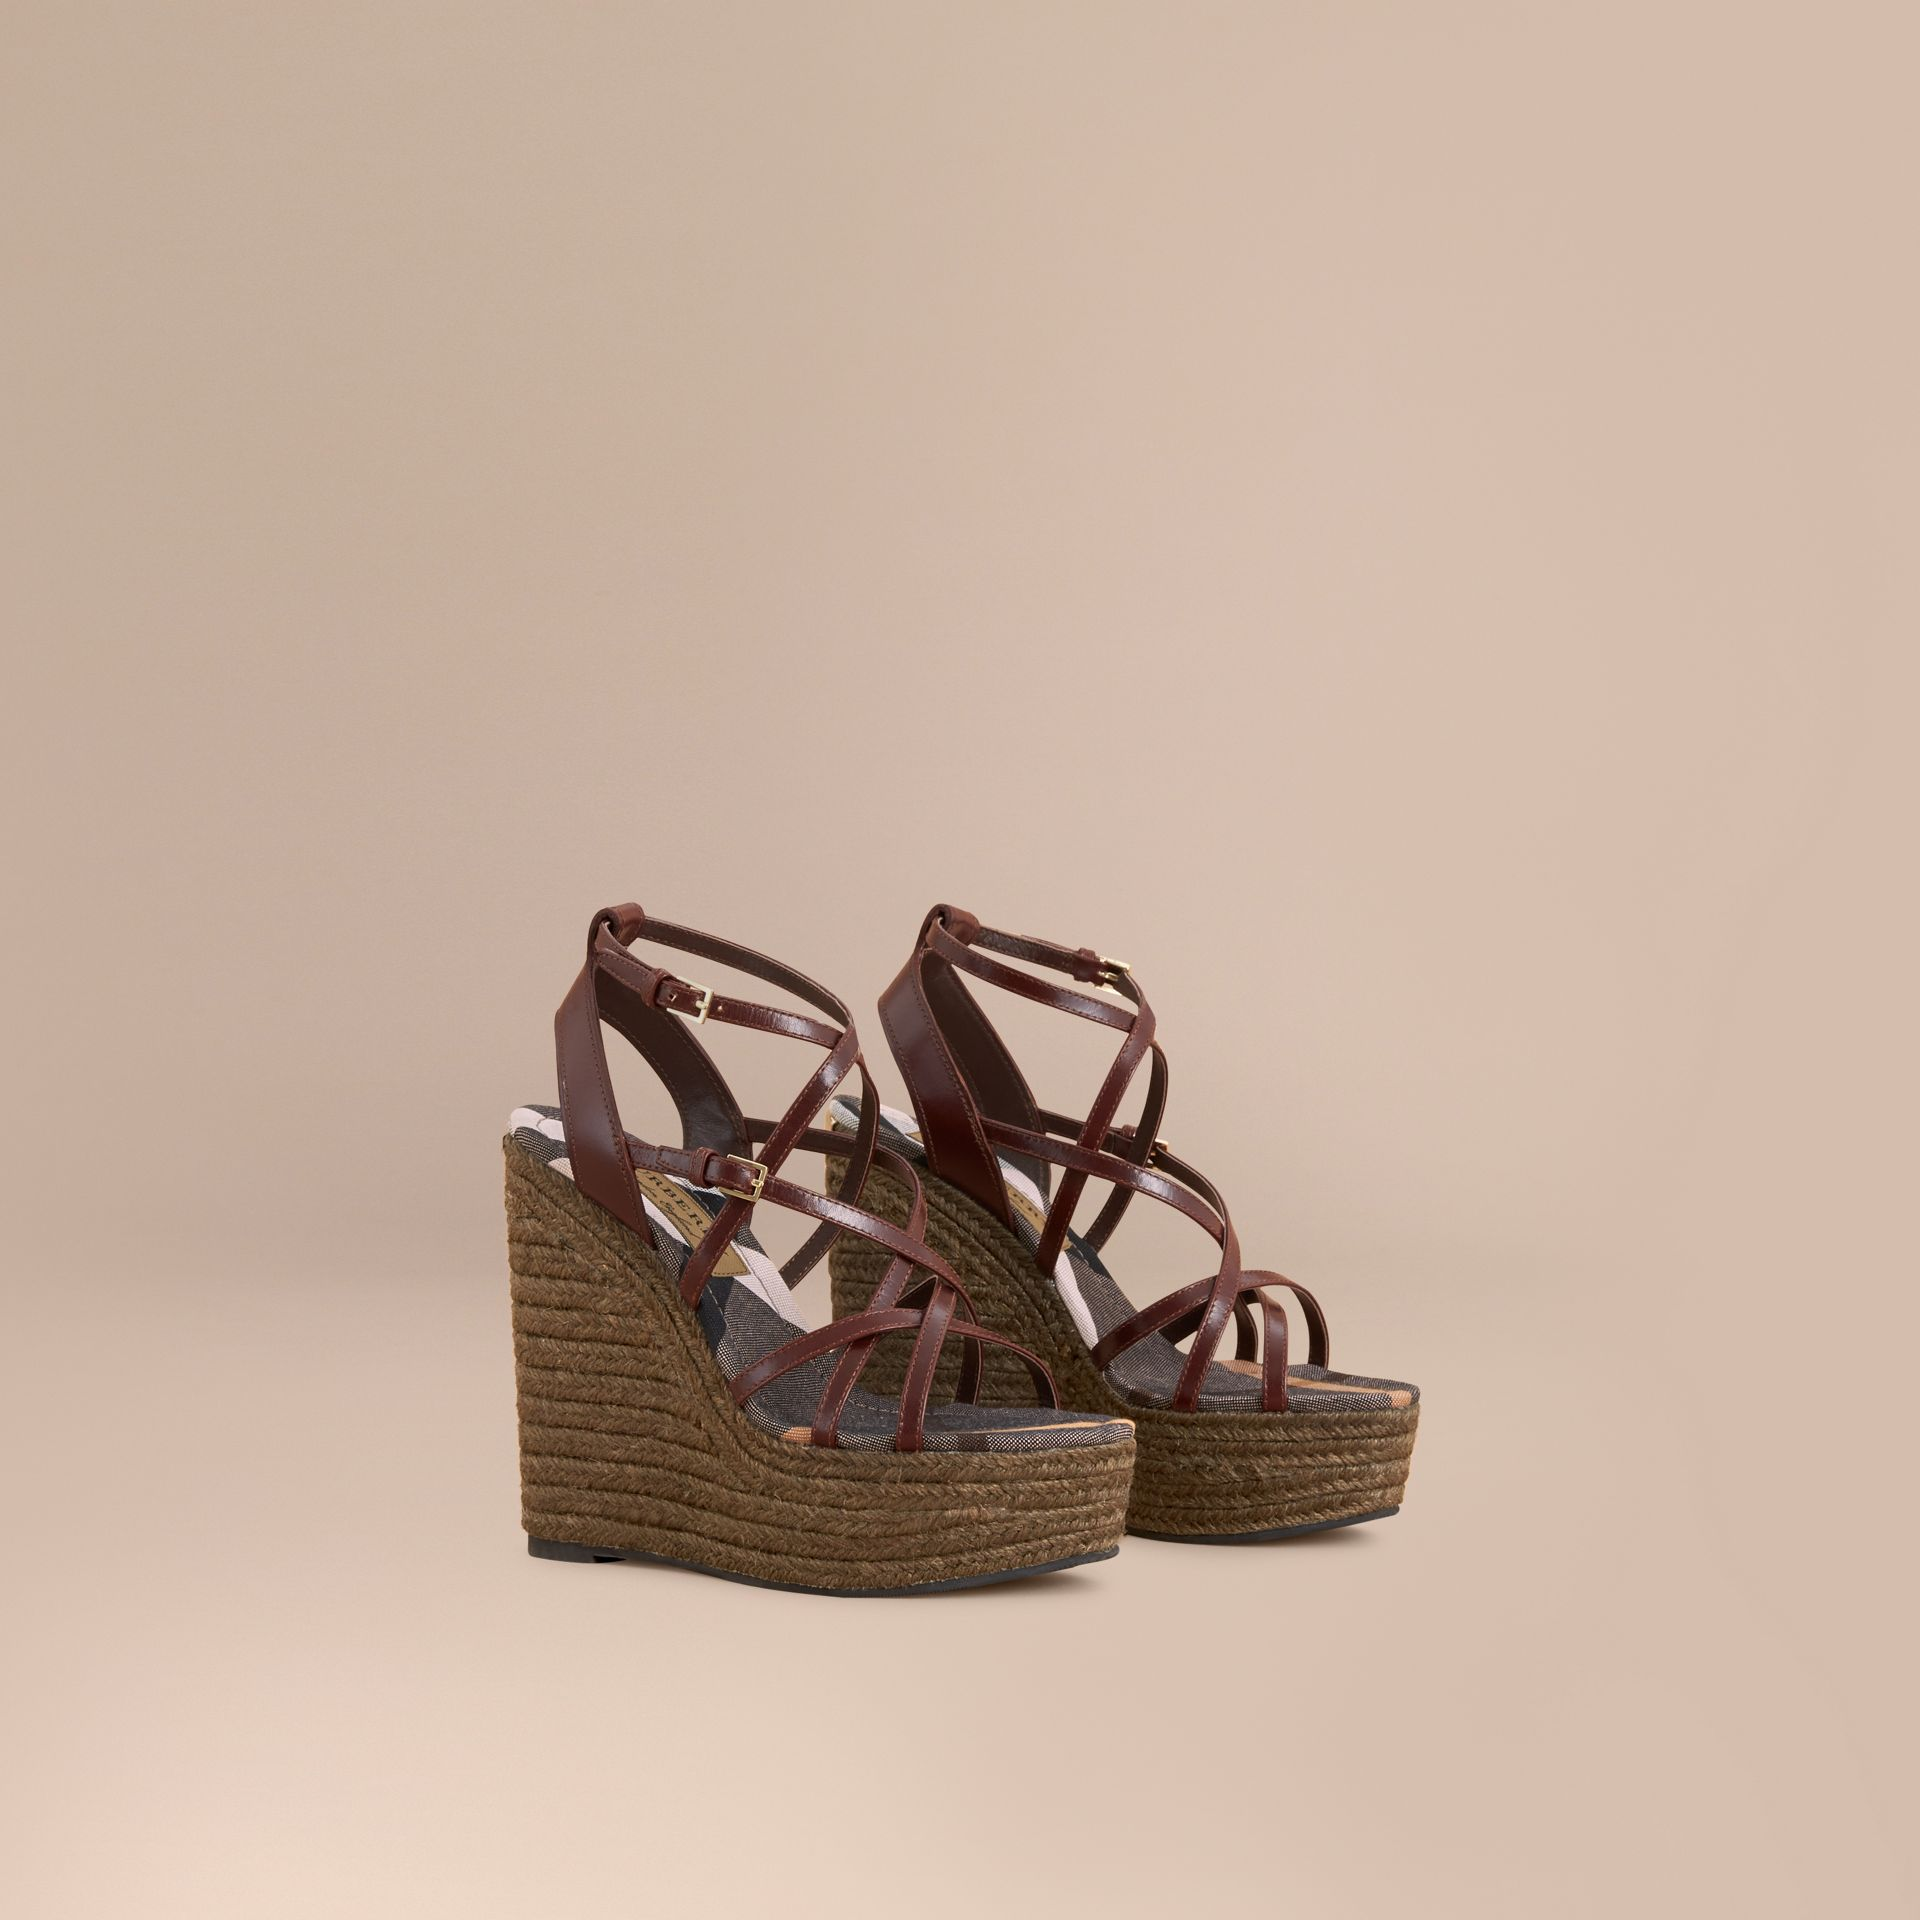 Leather Platform Espadrille Wedge Sandals in Cerise Purple - Women | Burberry - gallery image 1